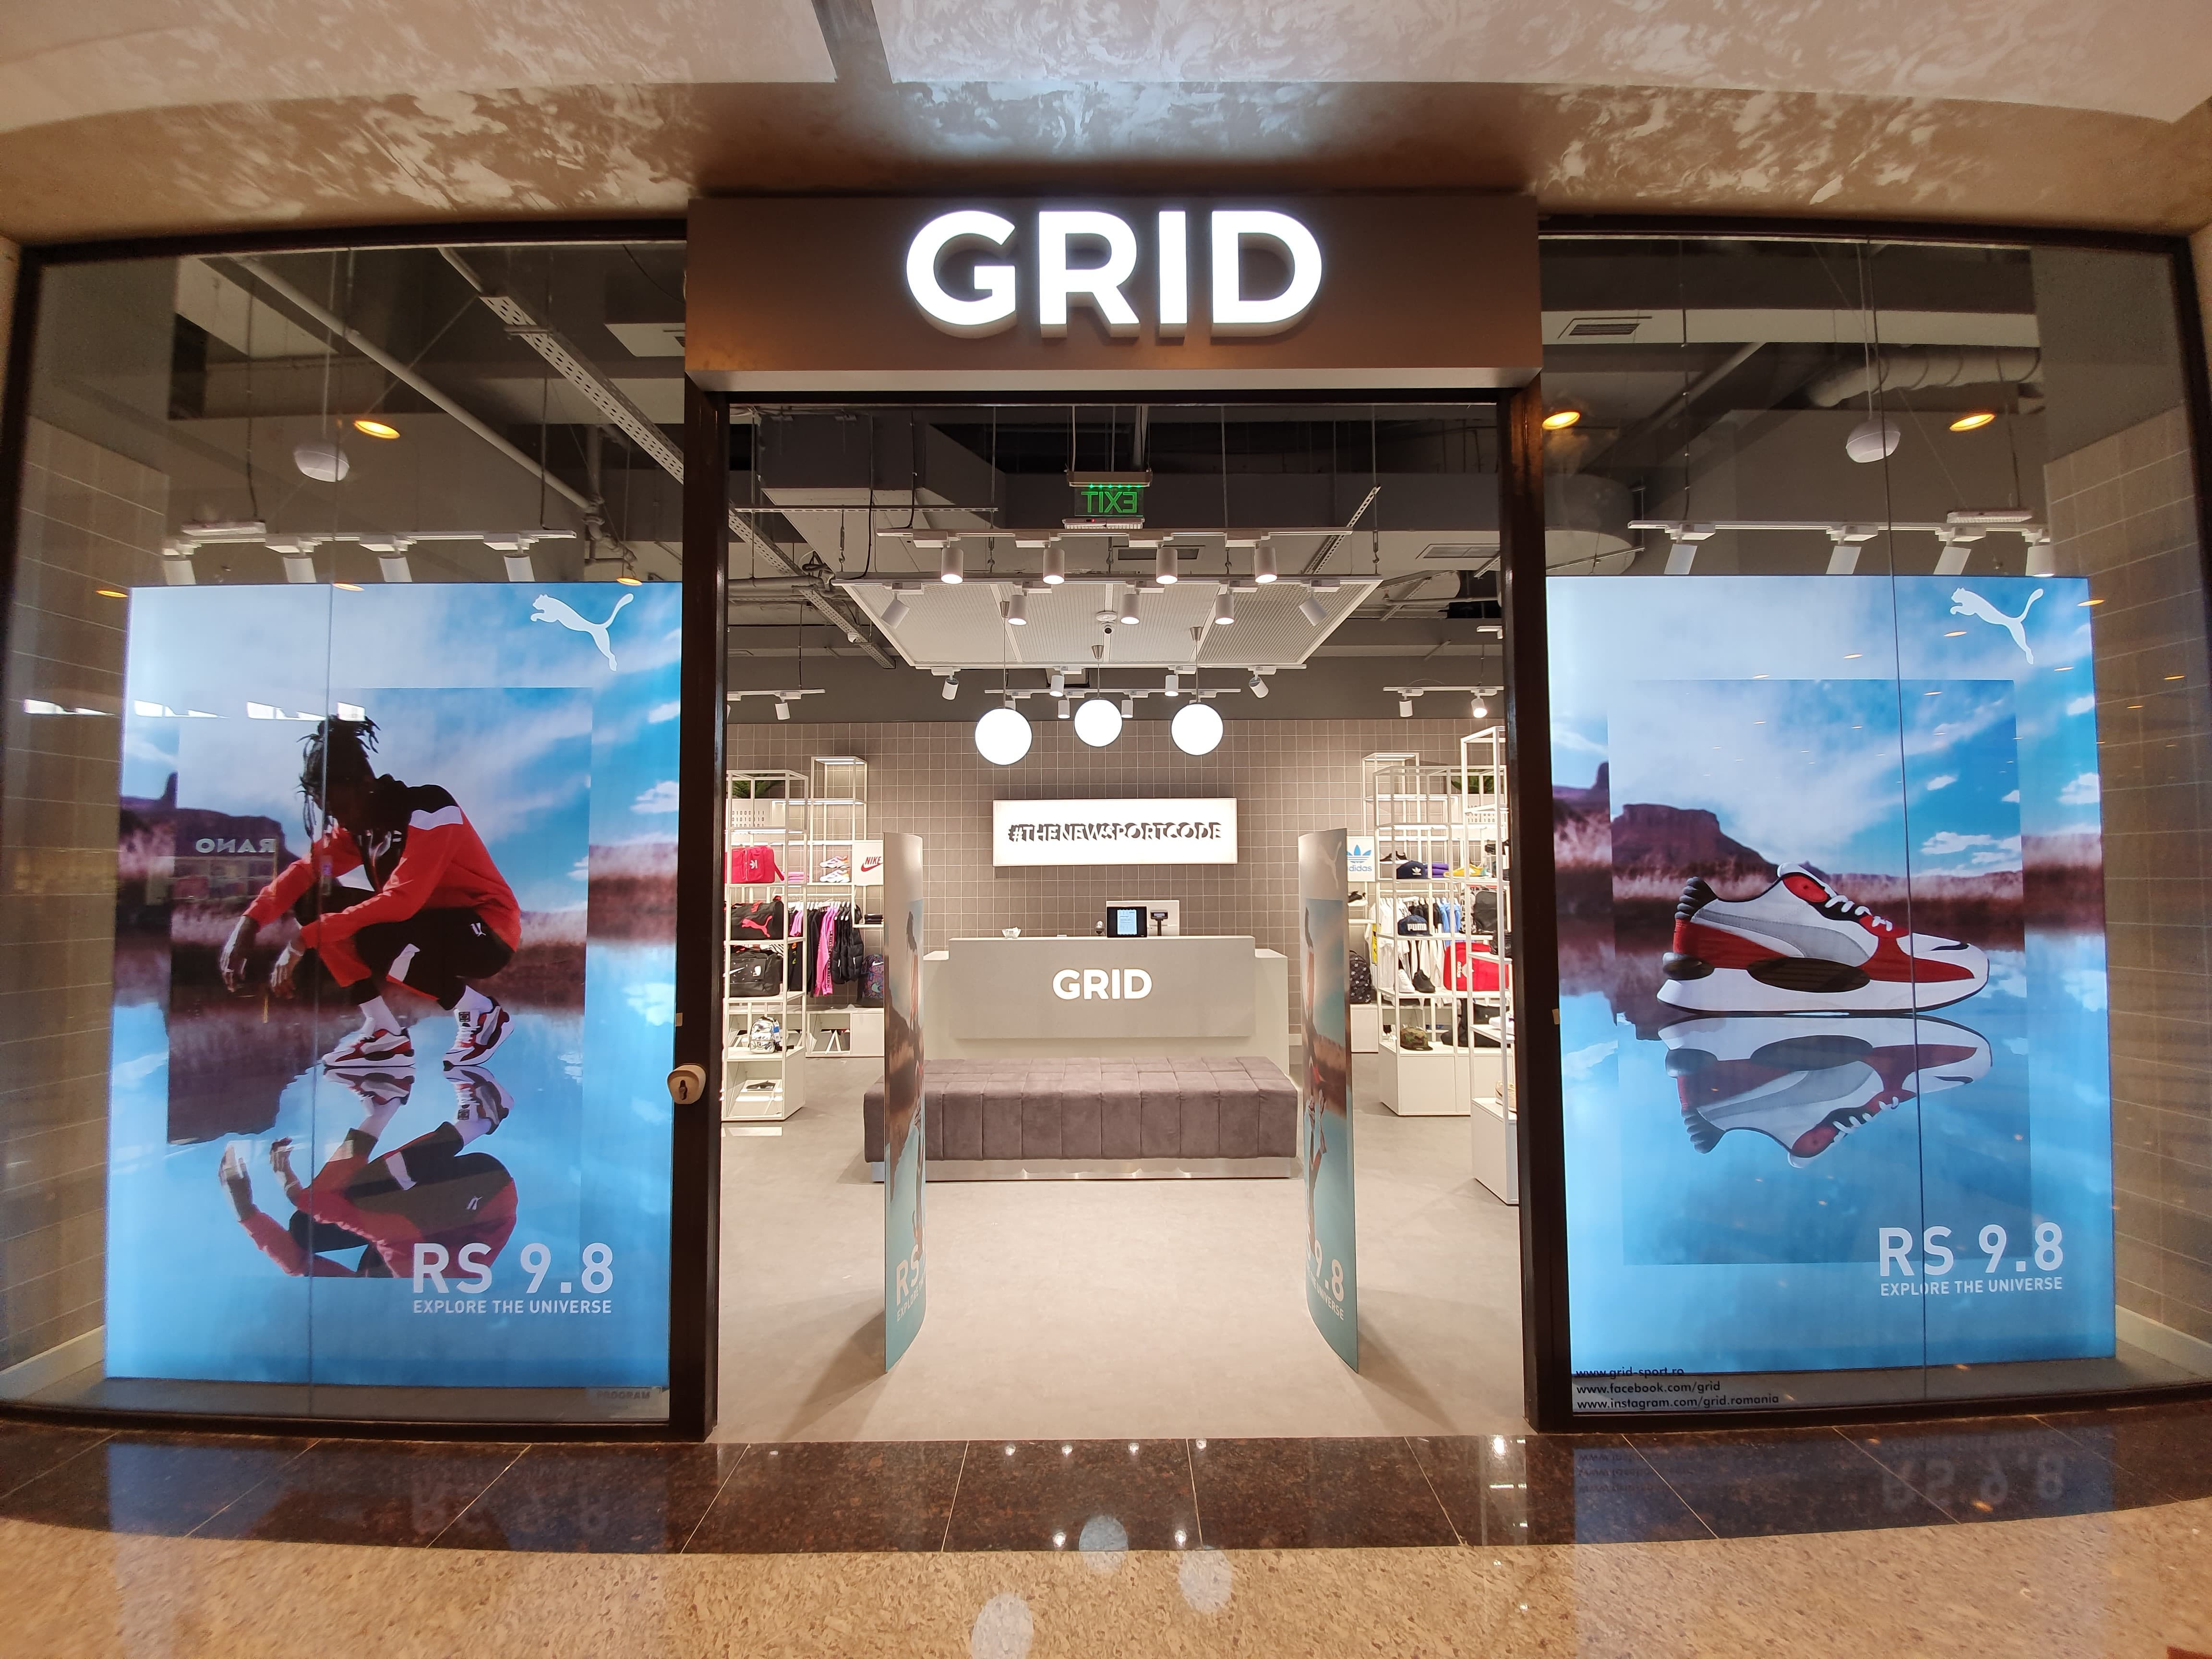 GRID expands with the first store in the west, in Timisoara